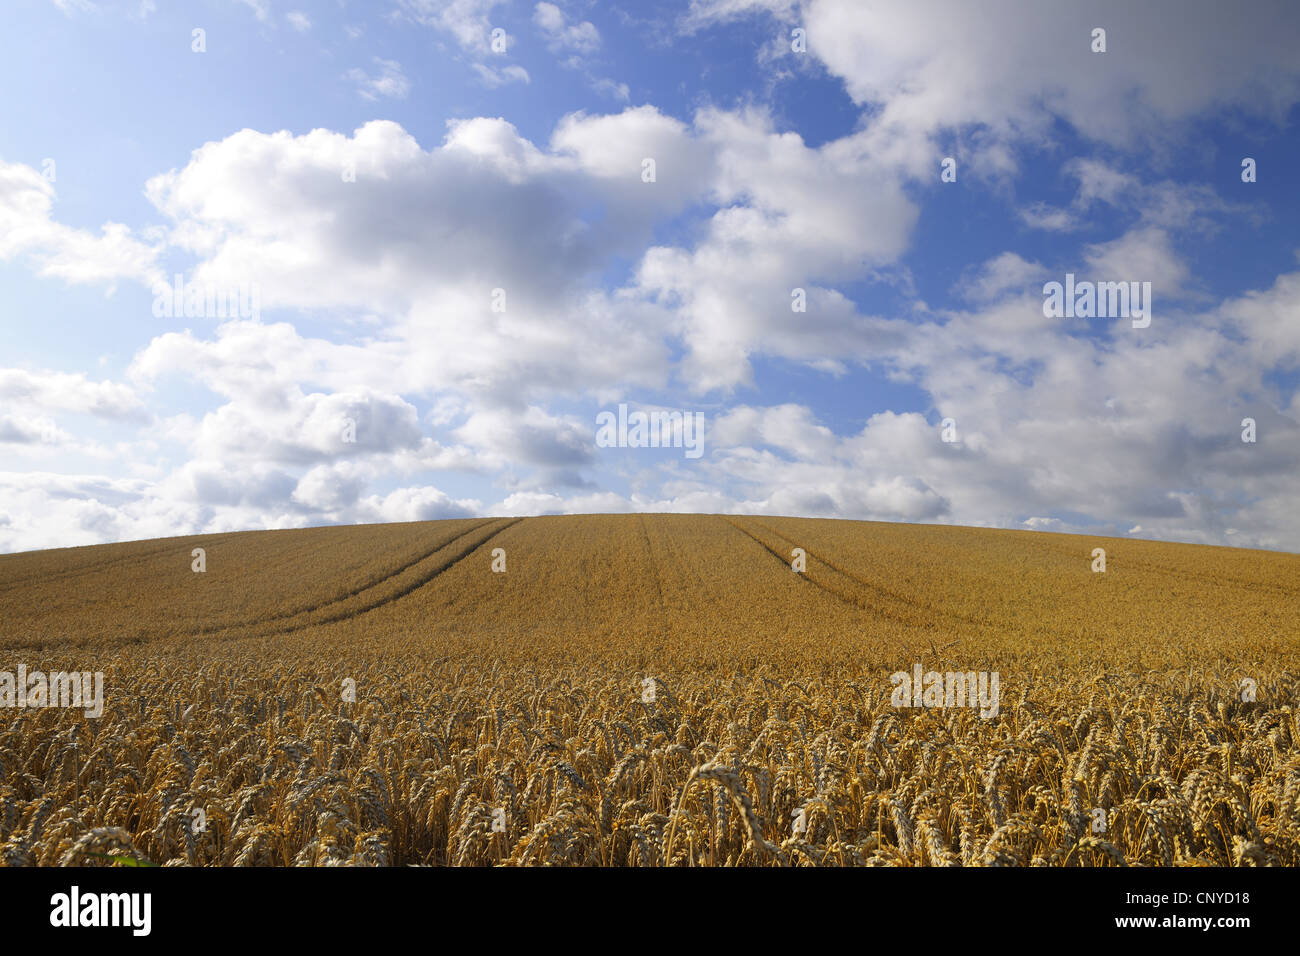 wheatfield in summer, Germany, Hesse - Stock Image